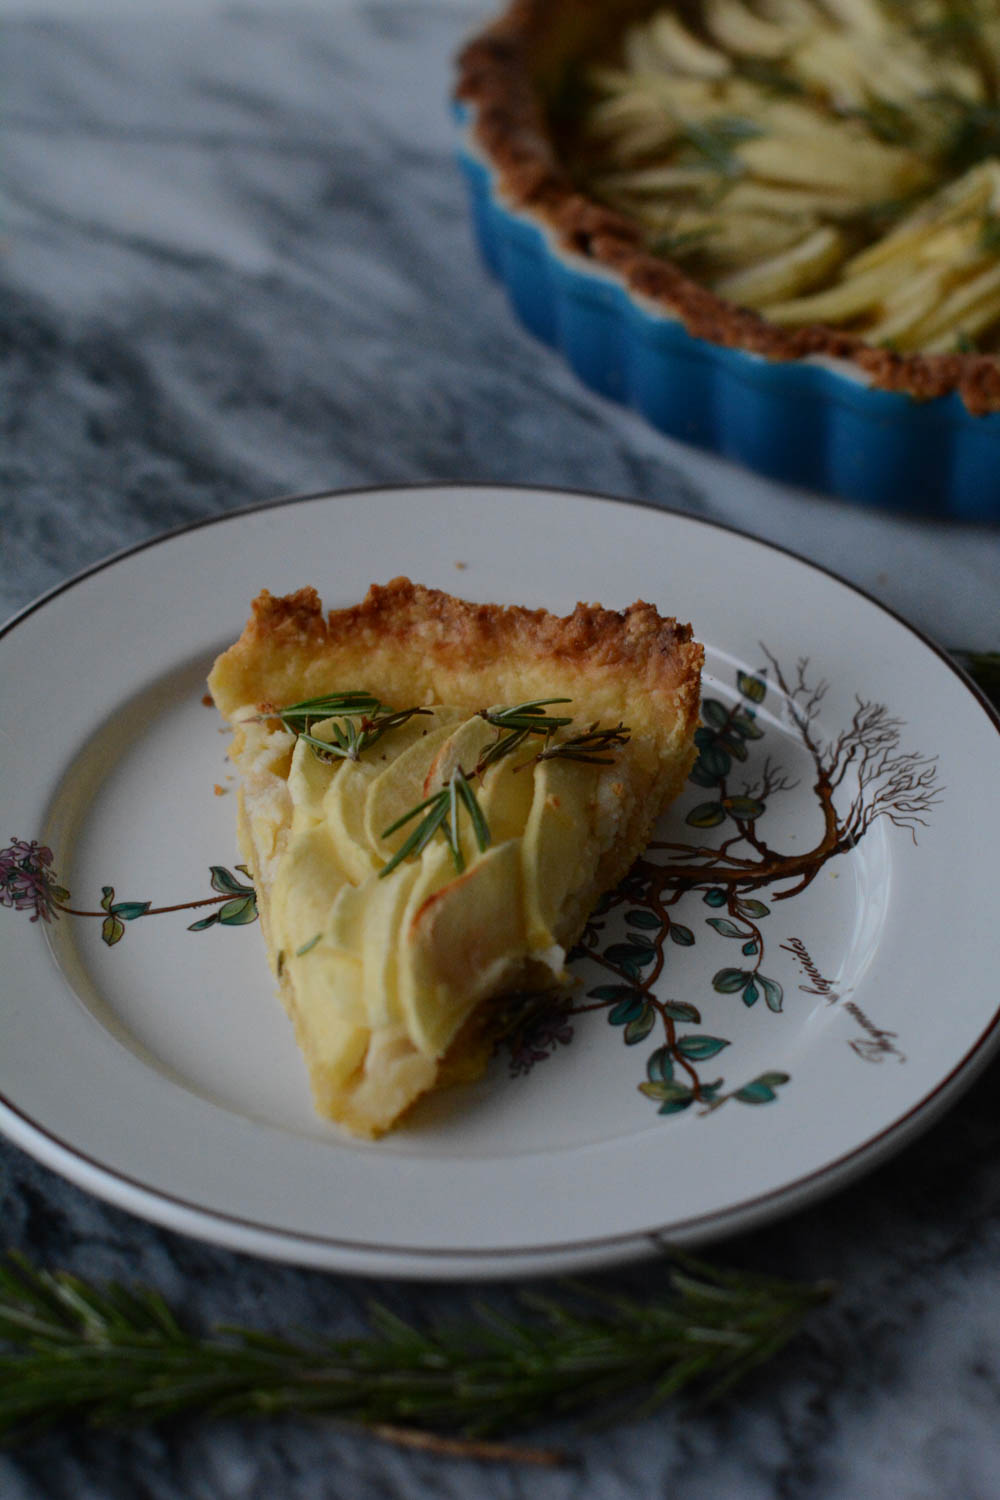 rosemary-apple-tart-6.jpg